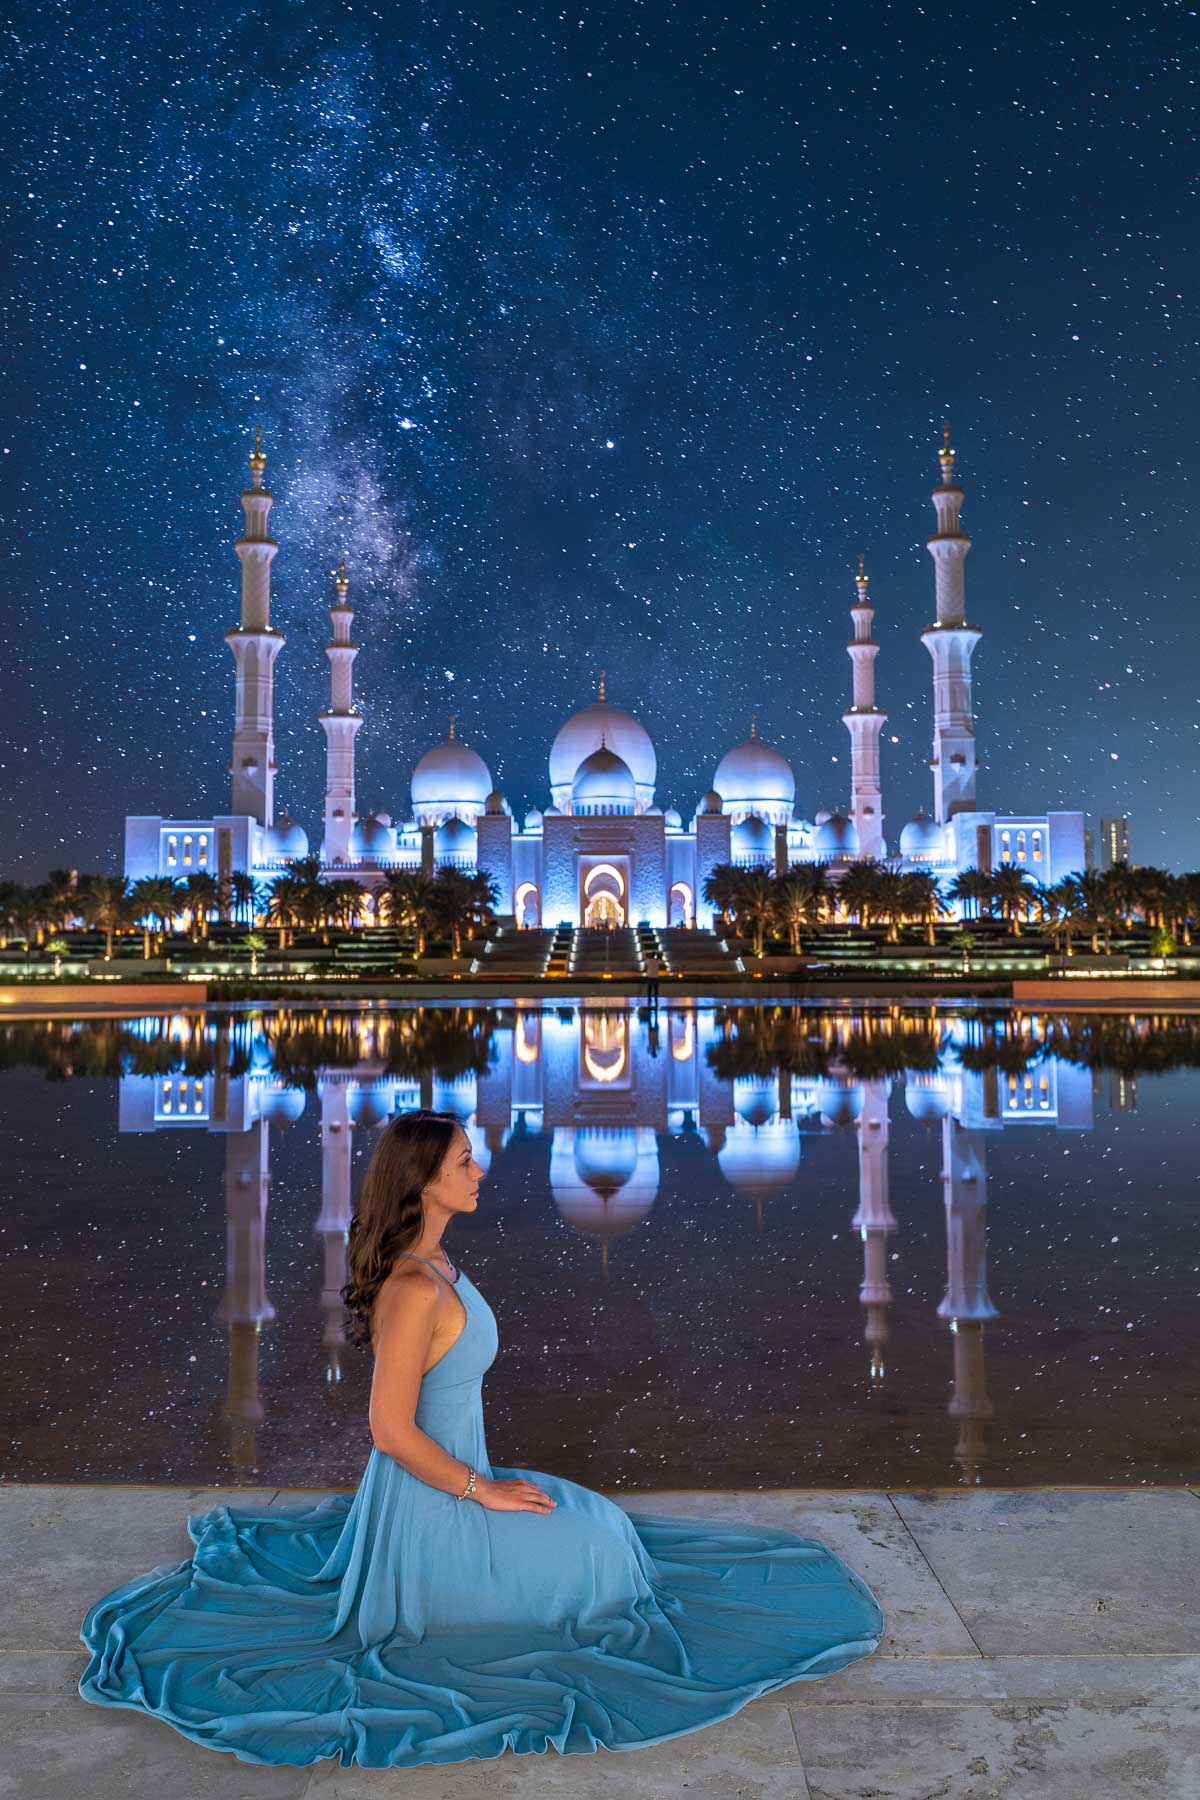 View of the Sheikh Zayed Grand Mosque at night with starry sky from Wahat al Karama, one of the most Instagrammable places in Abu Dhabi